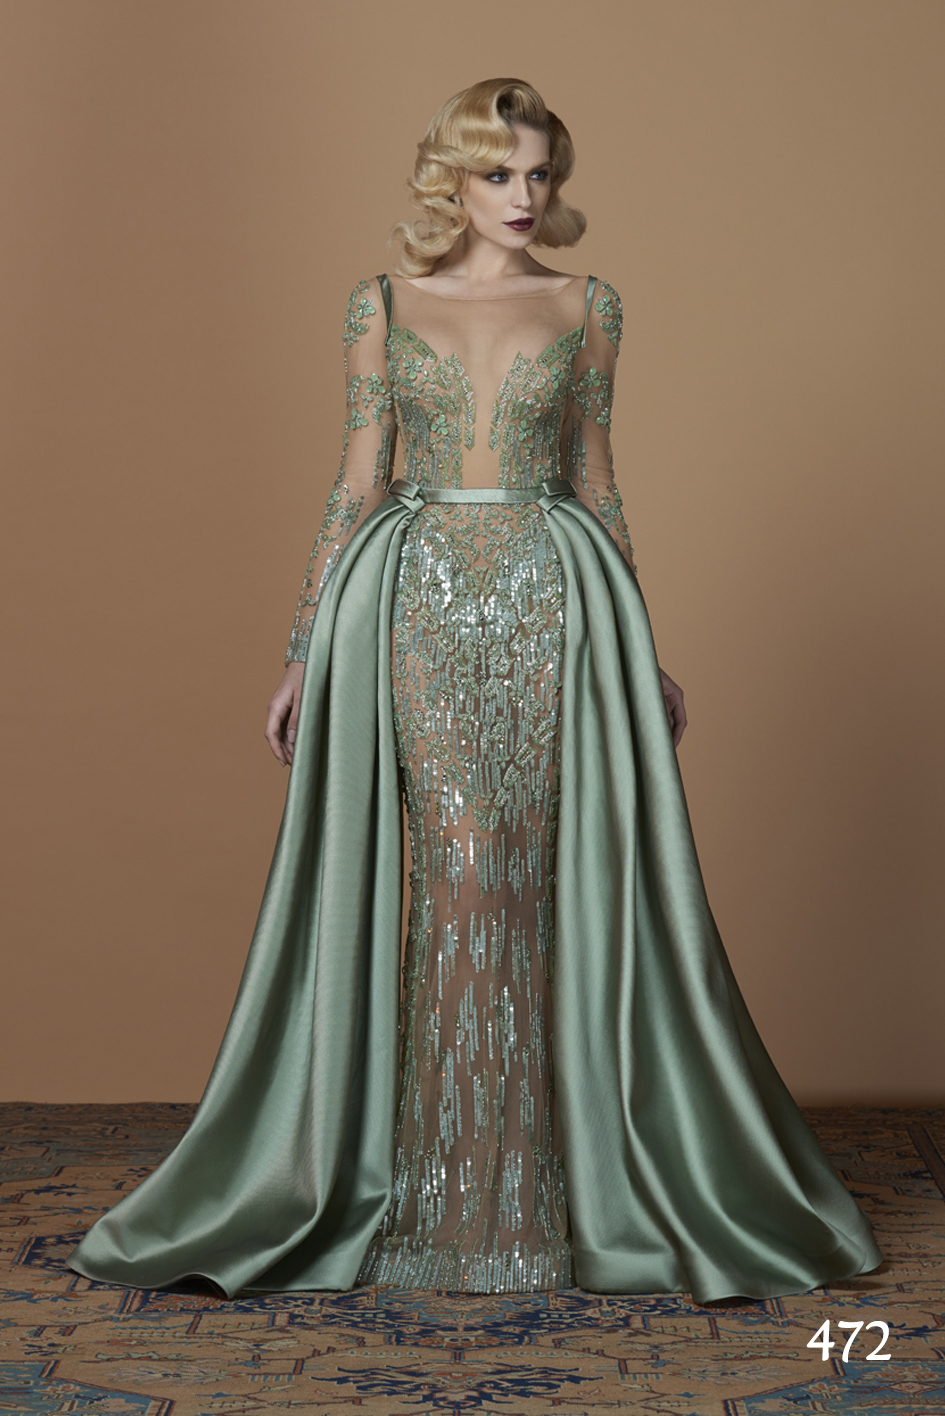 Mireille dagher for Couture clothing